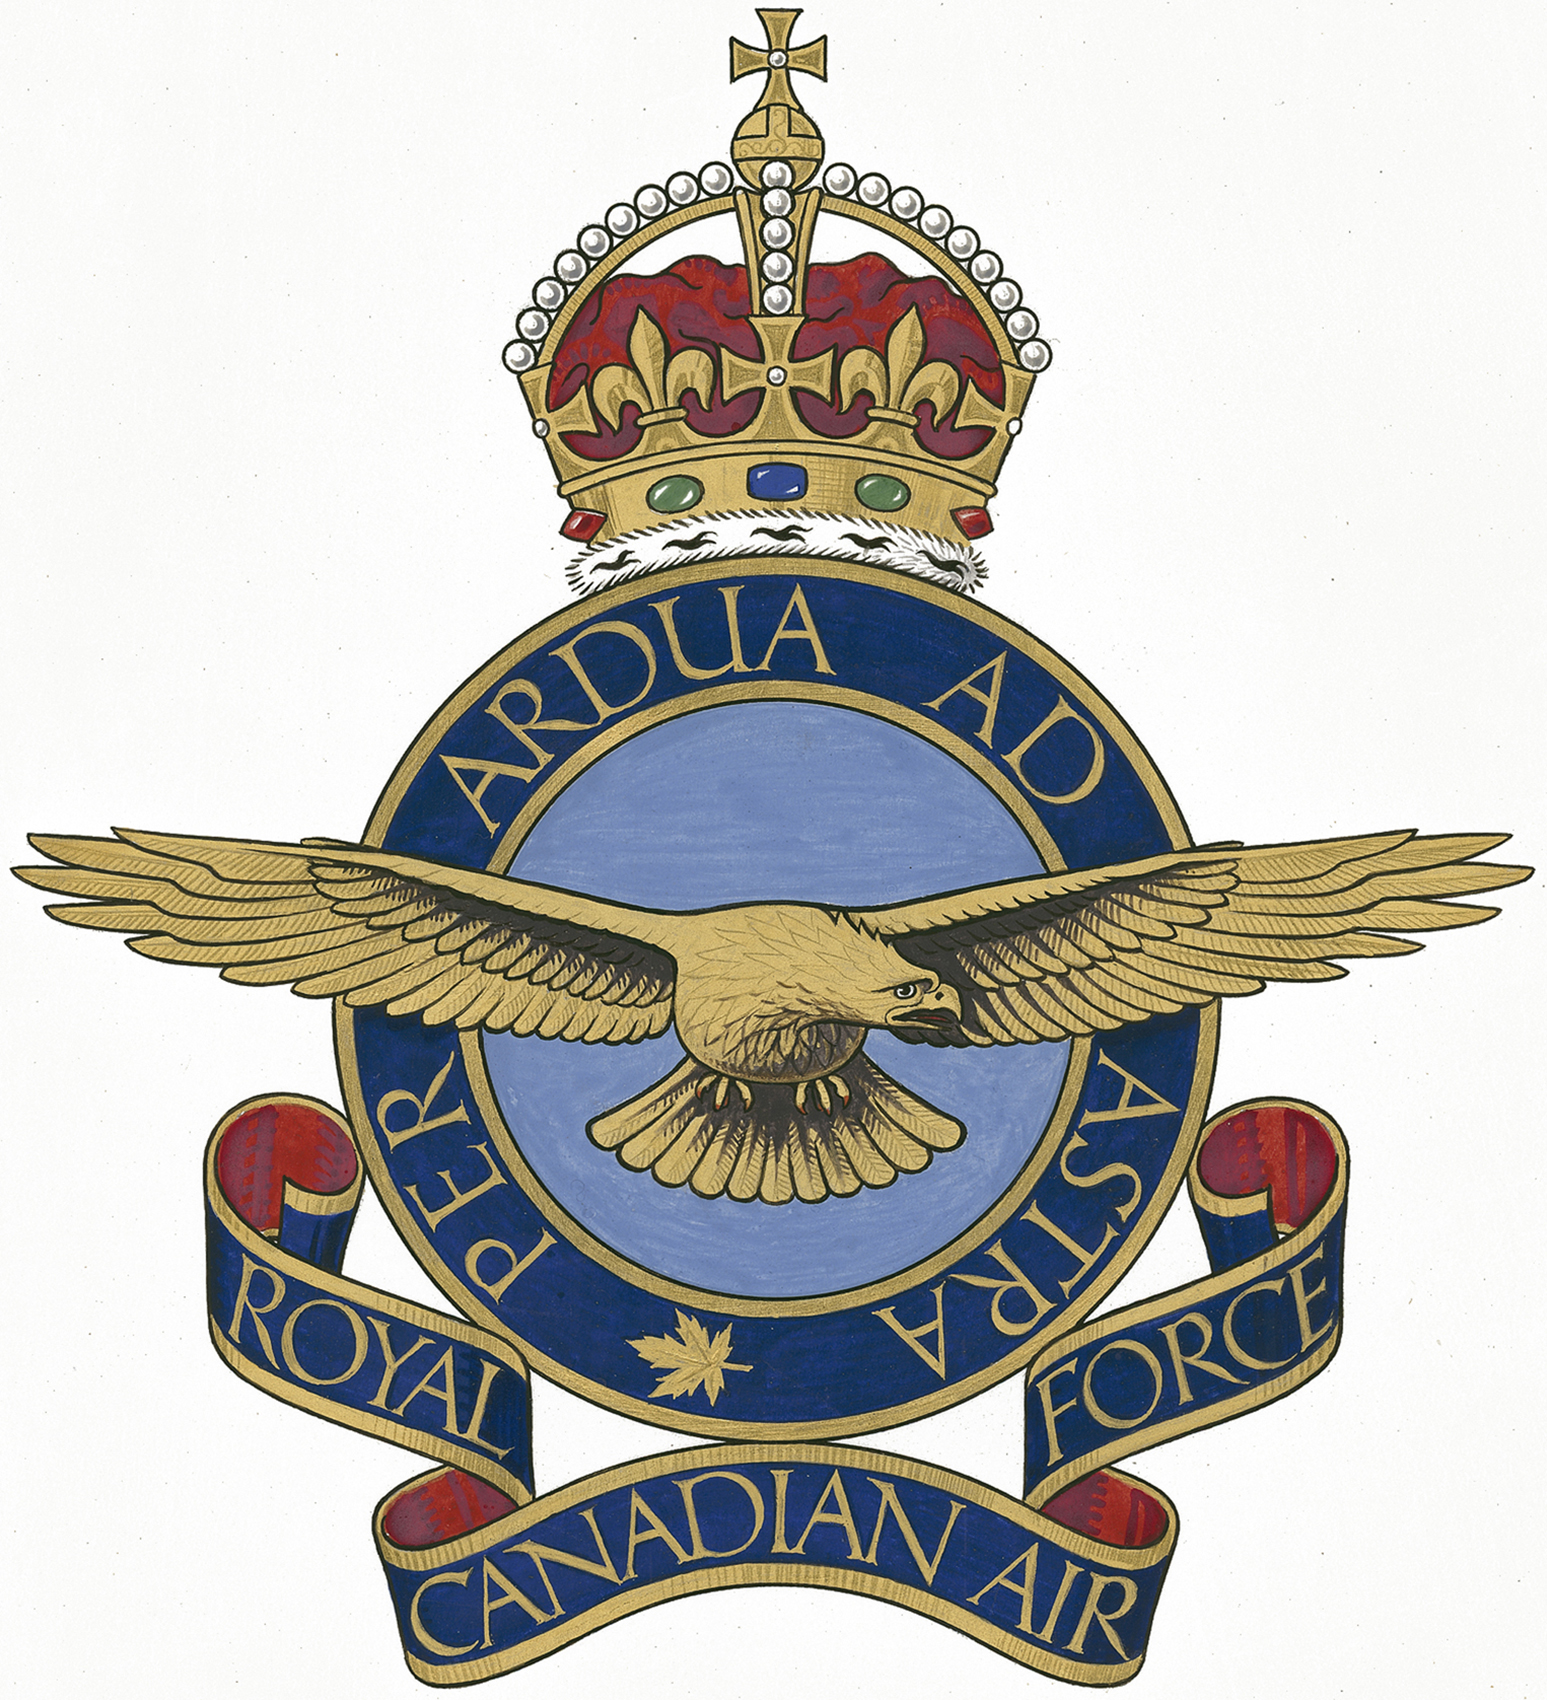 L'insigne original de l'Aviation royale du Canada, sur lequel on peut lire la devise empruntée à la Royal Air Force : « Per ardua ad astra » (« À travers les embûches jusqu'aux étoiles »). IMAGE : MDN